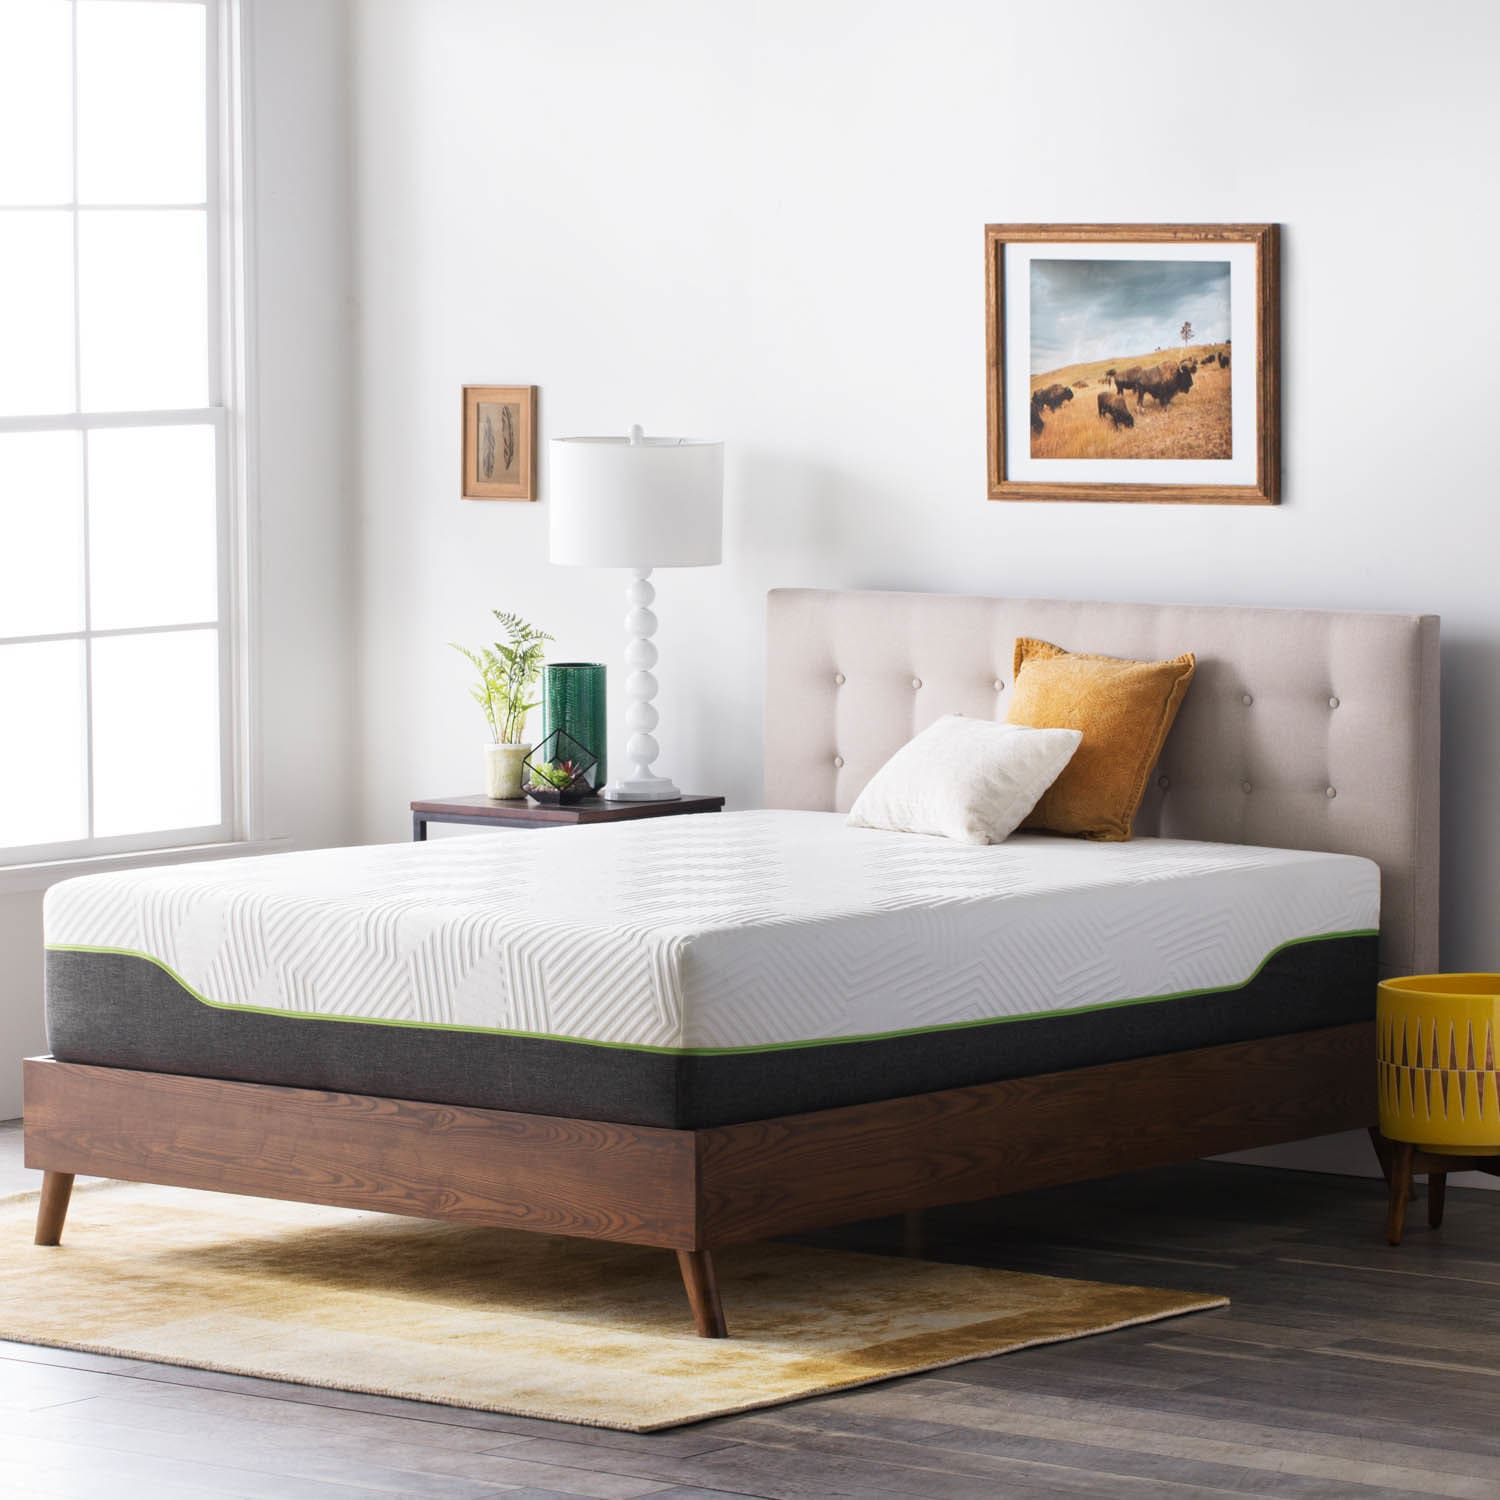 Second Hand King Size Mattress Buy King Size Mattresses Online At Overstock Our Best Bedroom